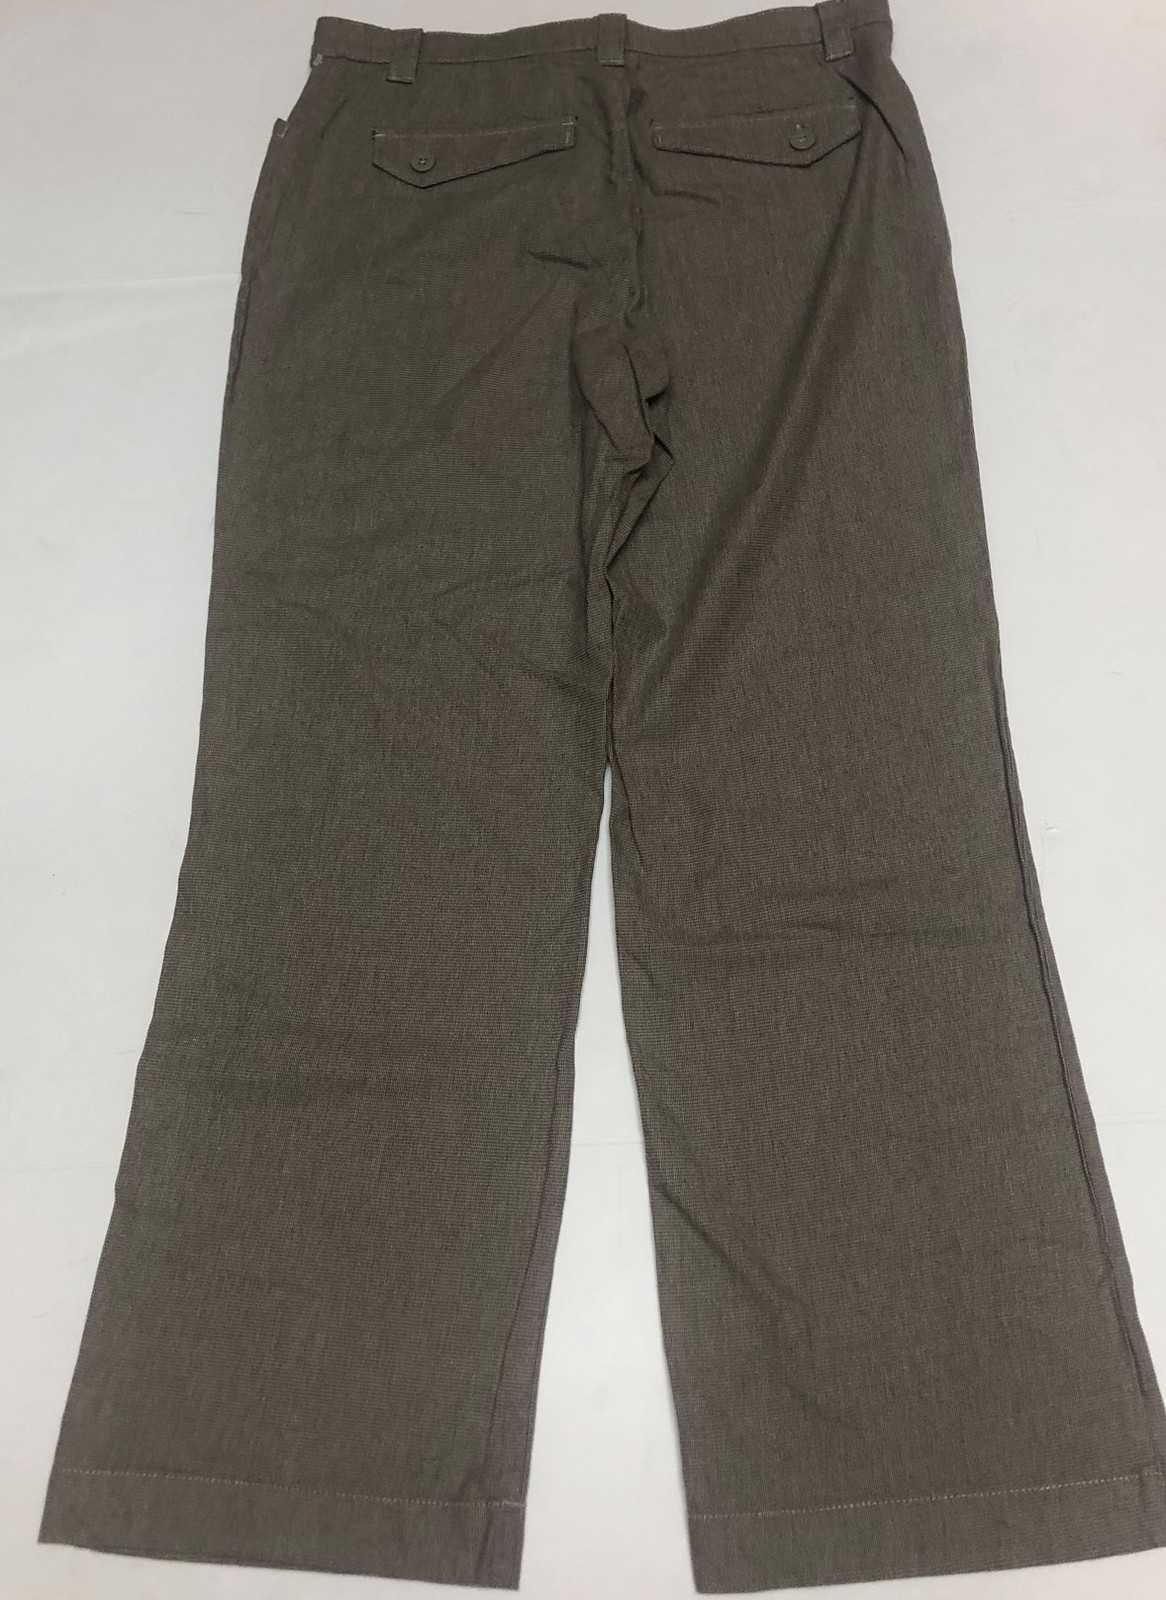 Lee Comfort Fit Casual Pants Women's Sz 14M Gray Small Plaid image 6